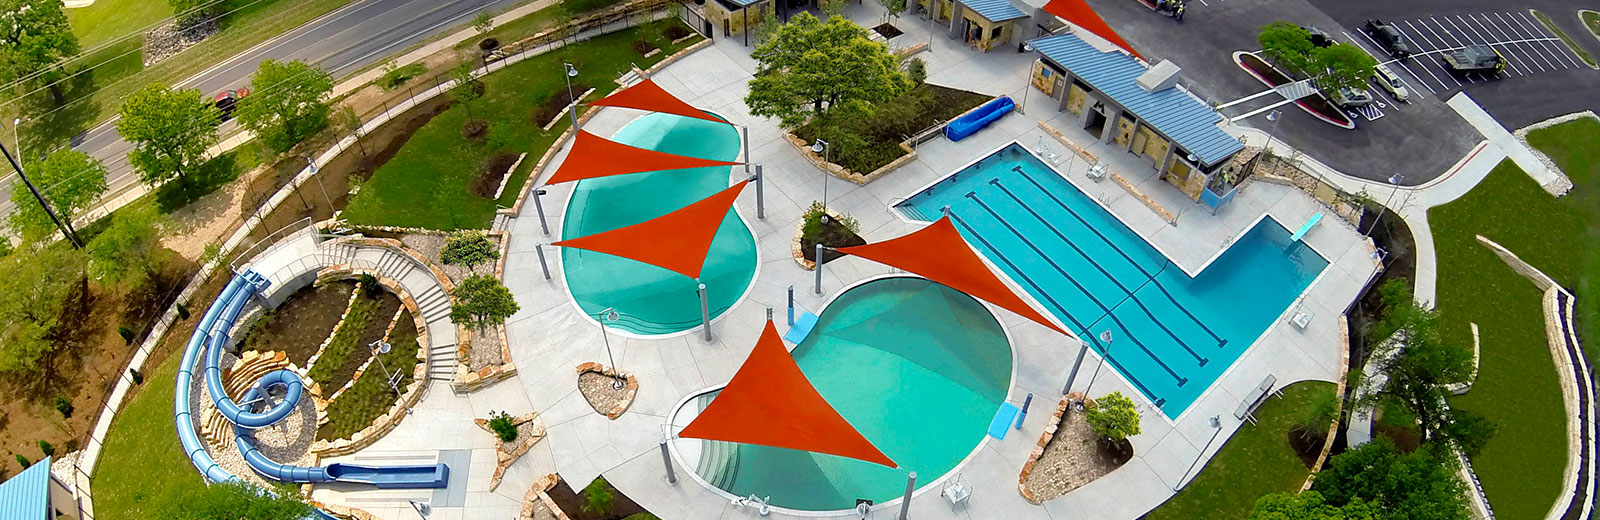 Triangle Sails Over Pool